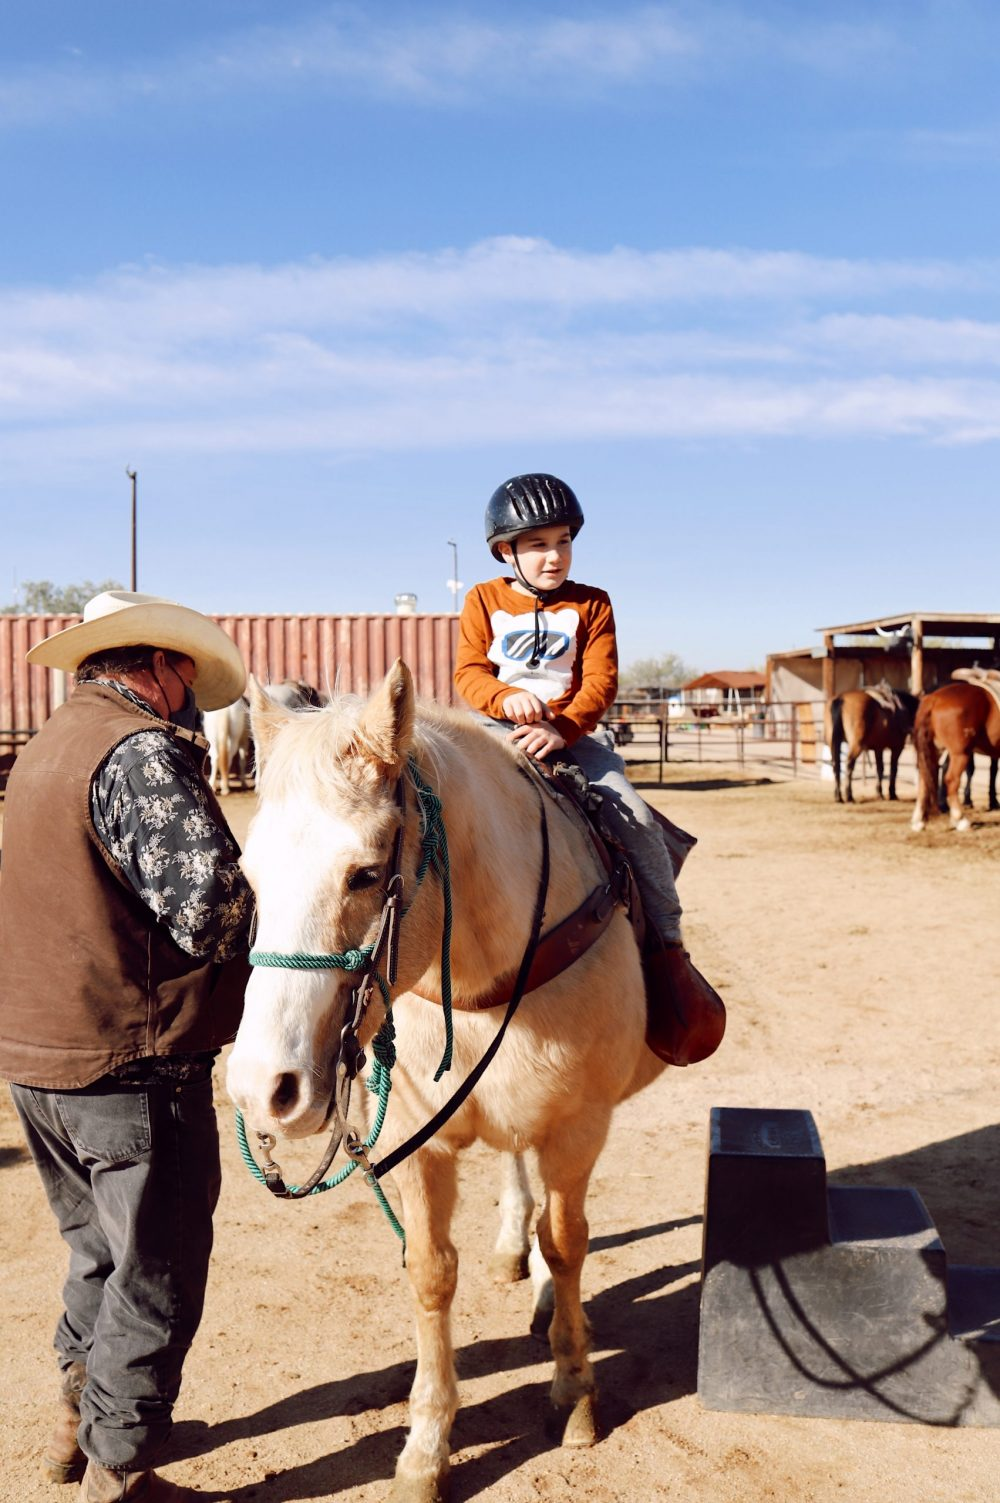 One of the Best Secret Winter Sun Destinations, Scottsdale Arizona. Horseback riding in the desert and family-friendly activities at MacDonald's Ranch. |Guide by popular Florida travel blog, Fresh Mommy Blog: image of a little boy riding a horse.